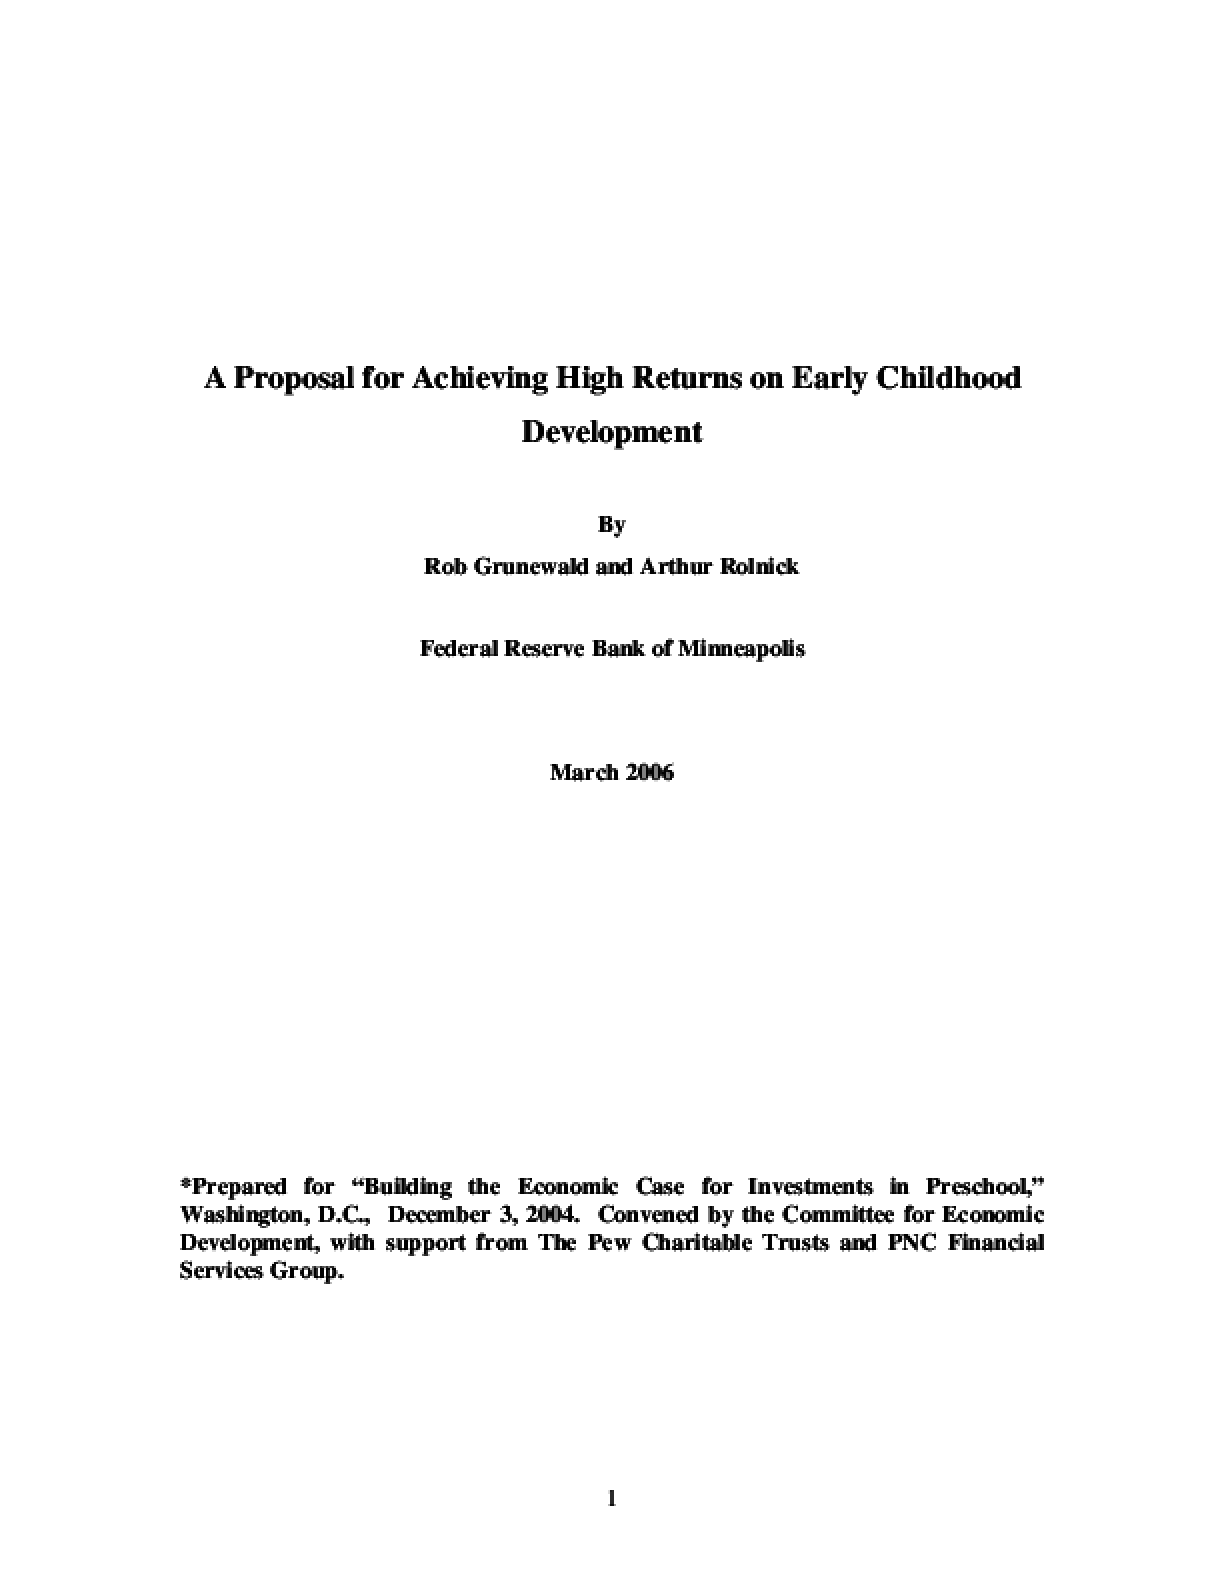 A Proposal for Achieving High Returns on Early Childhood Development